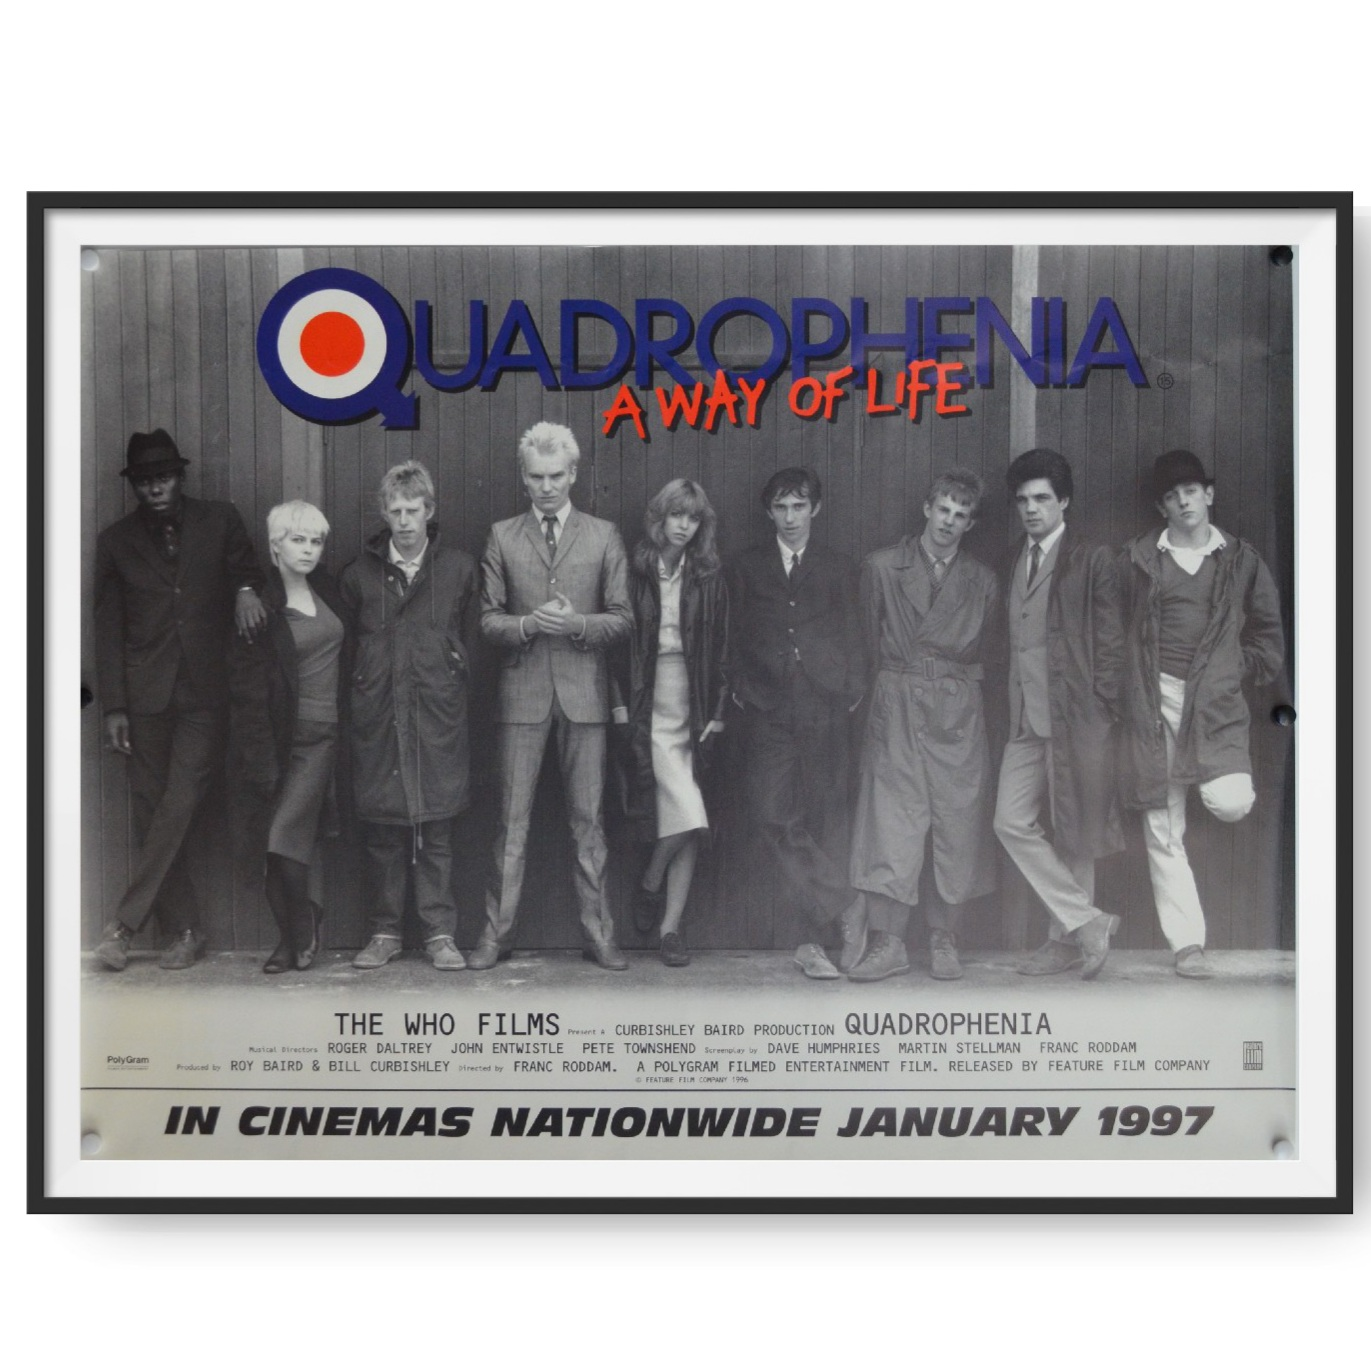 This is an original cinema poster for a 1997 re-release of the film Quadrophenia. The posters shows a group of the films characters, including Phil Daniels, Ray Winstone and Sting, standing in a line up.